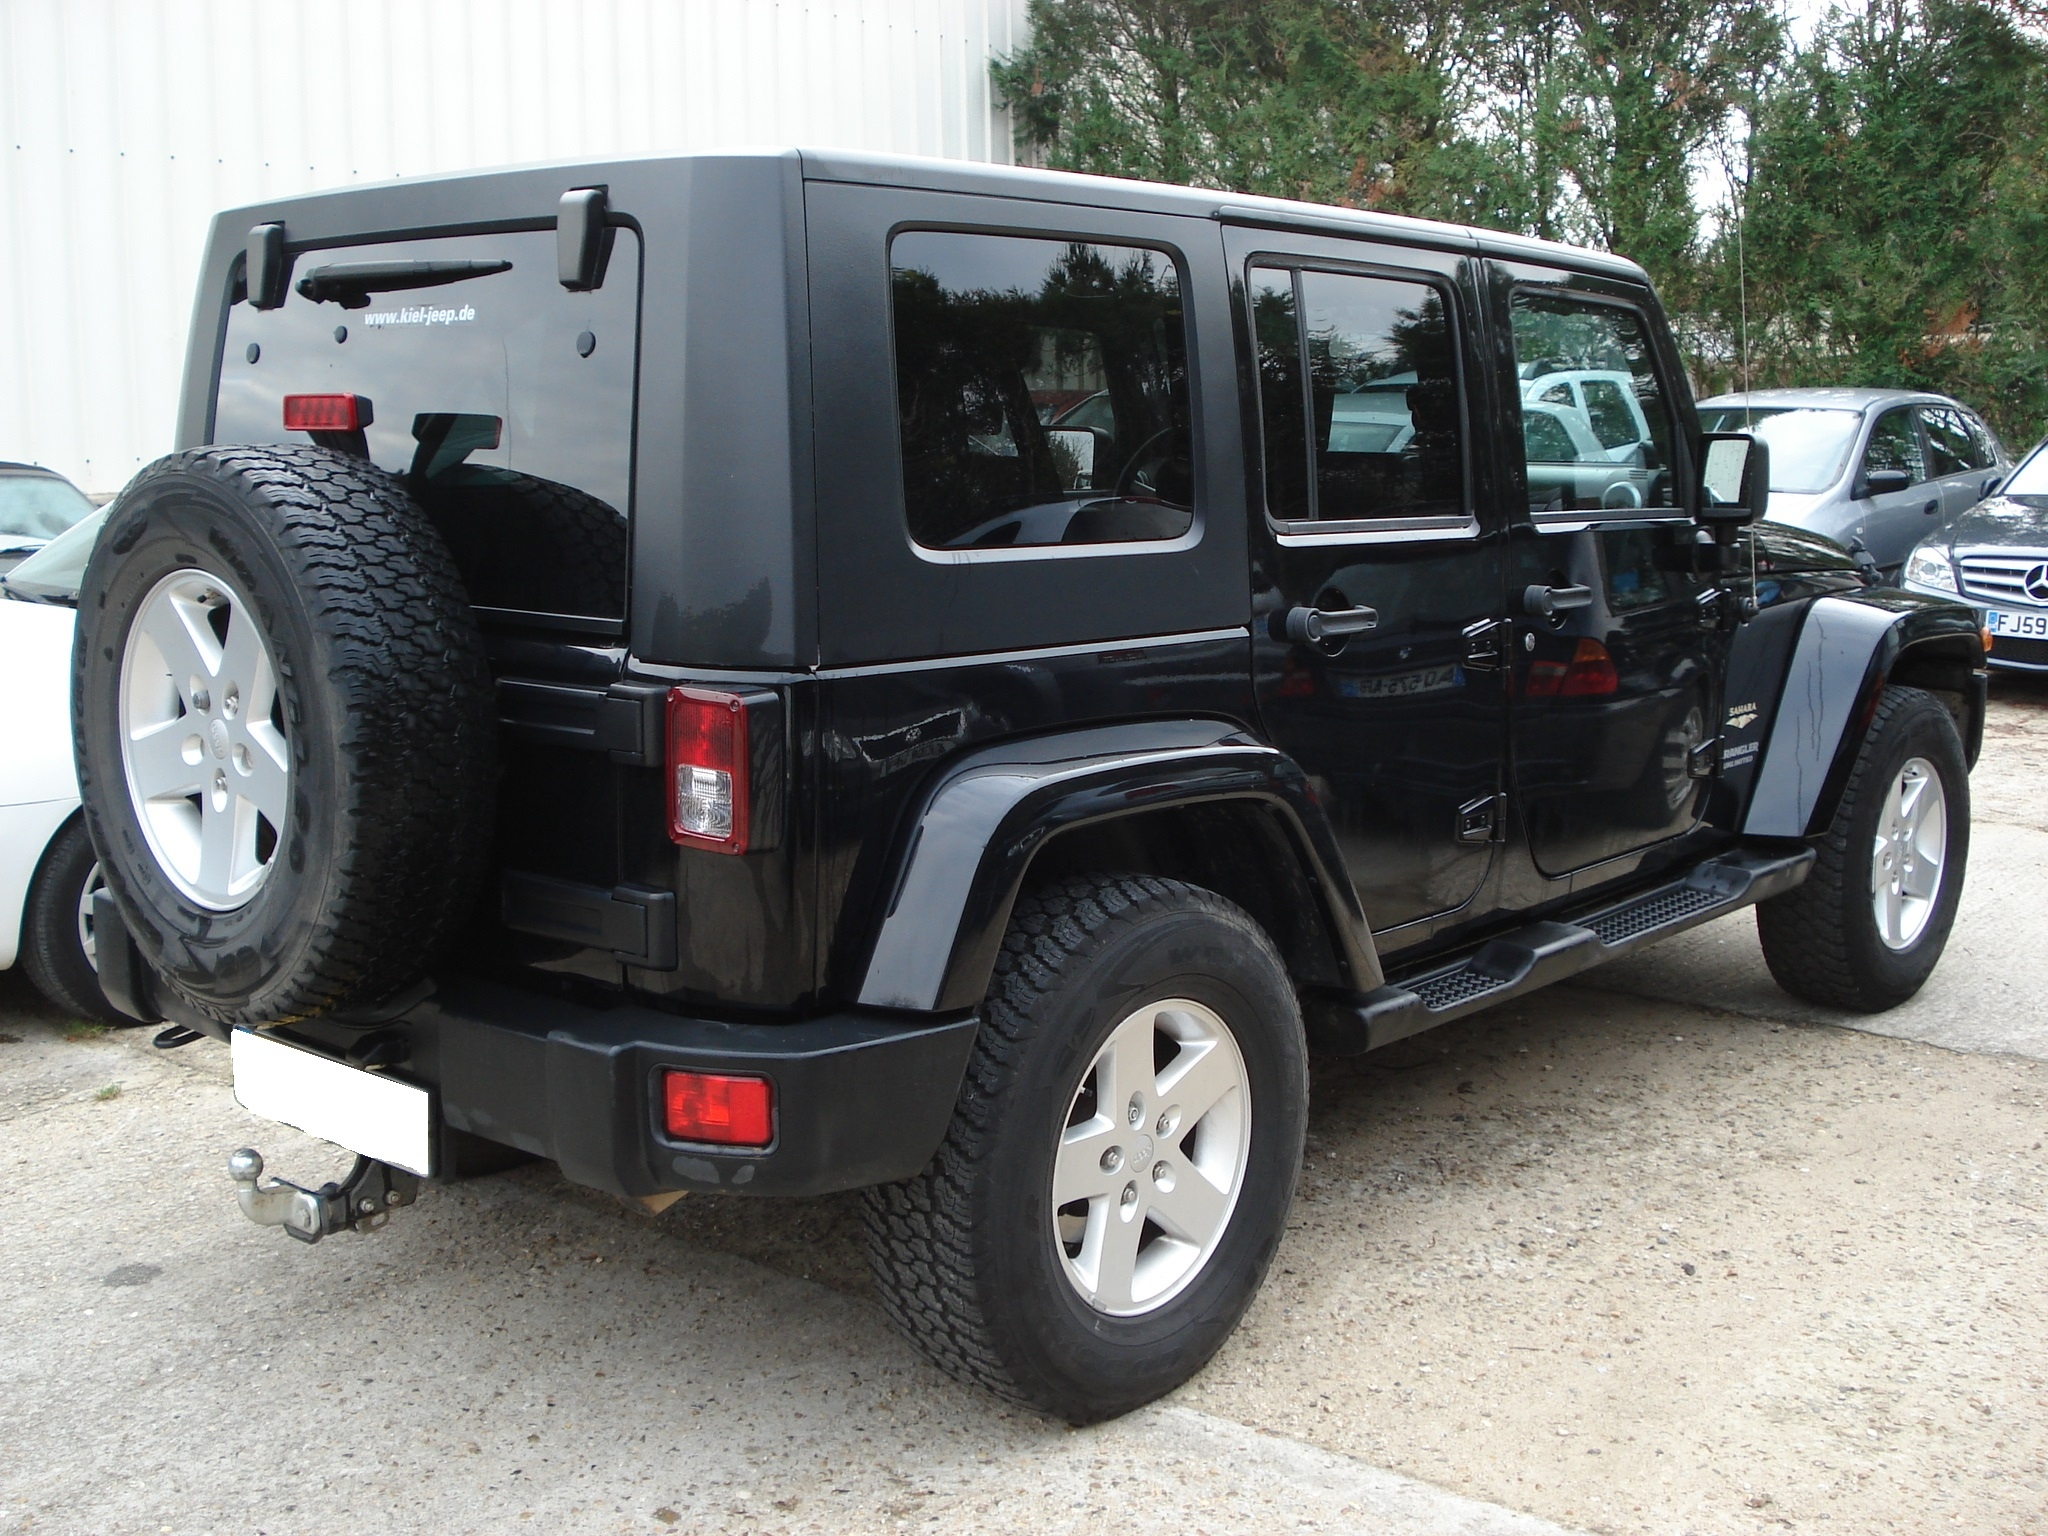 Jeep Wrangler 12 2010 Black Lieu